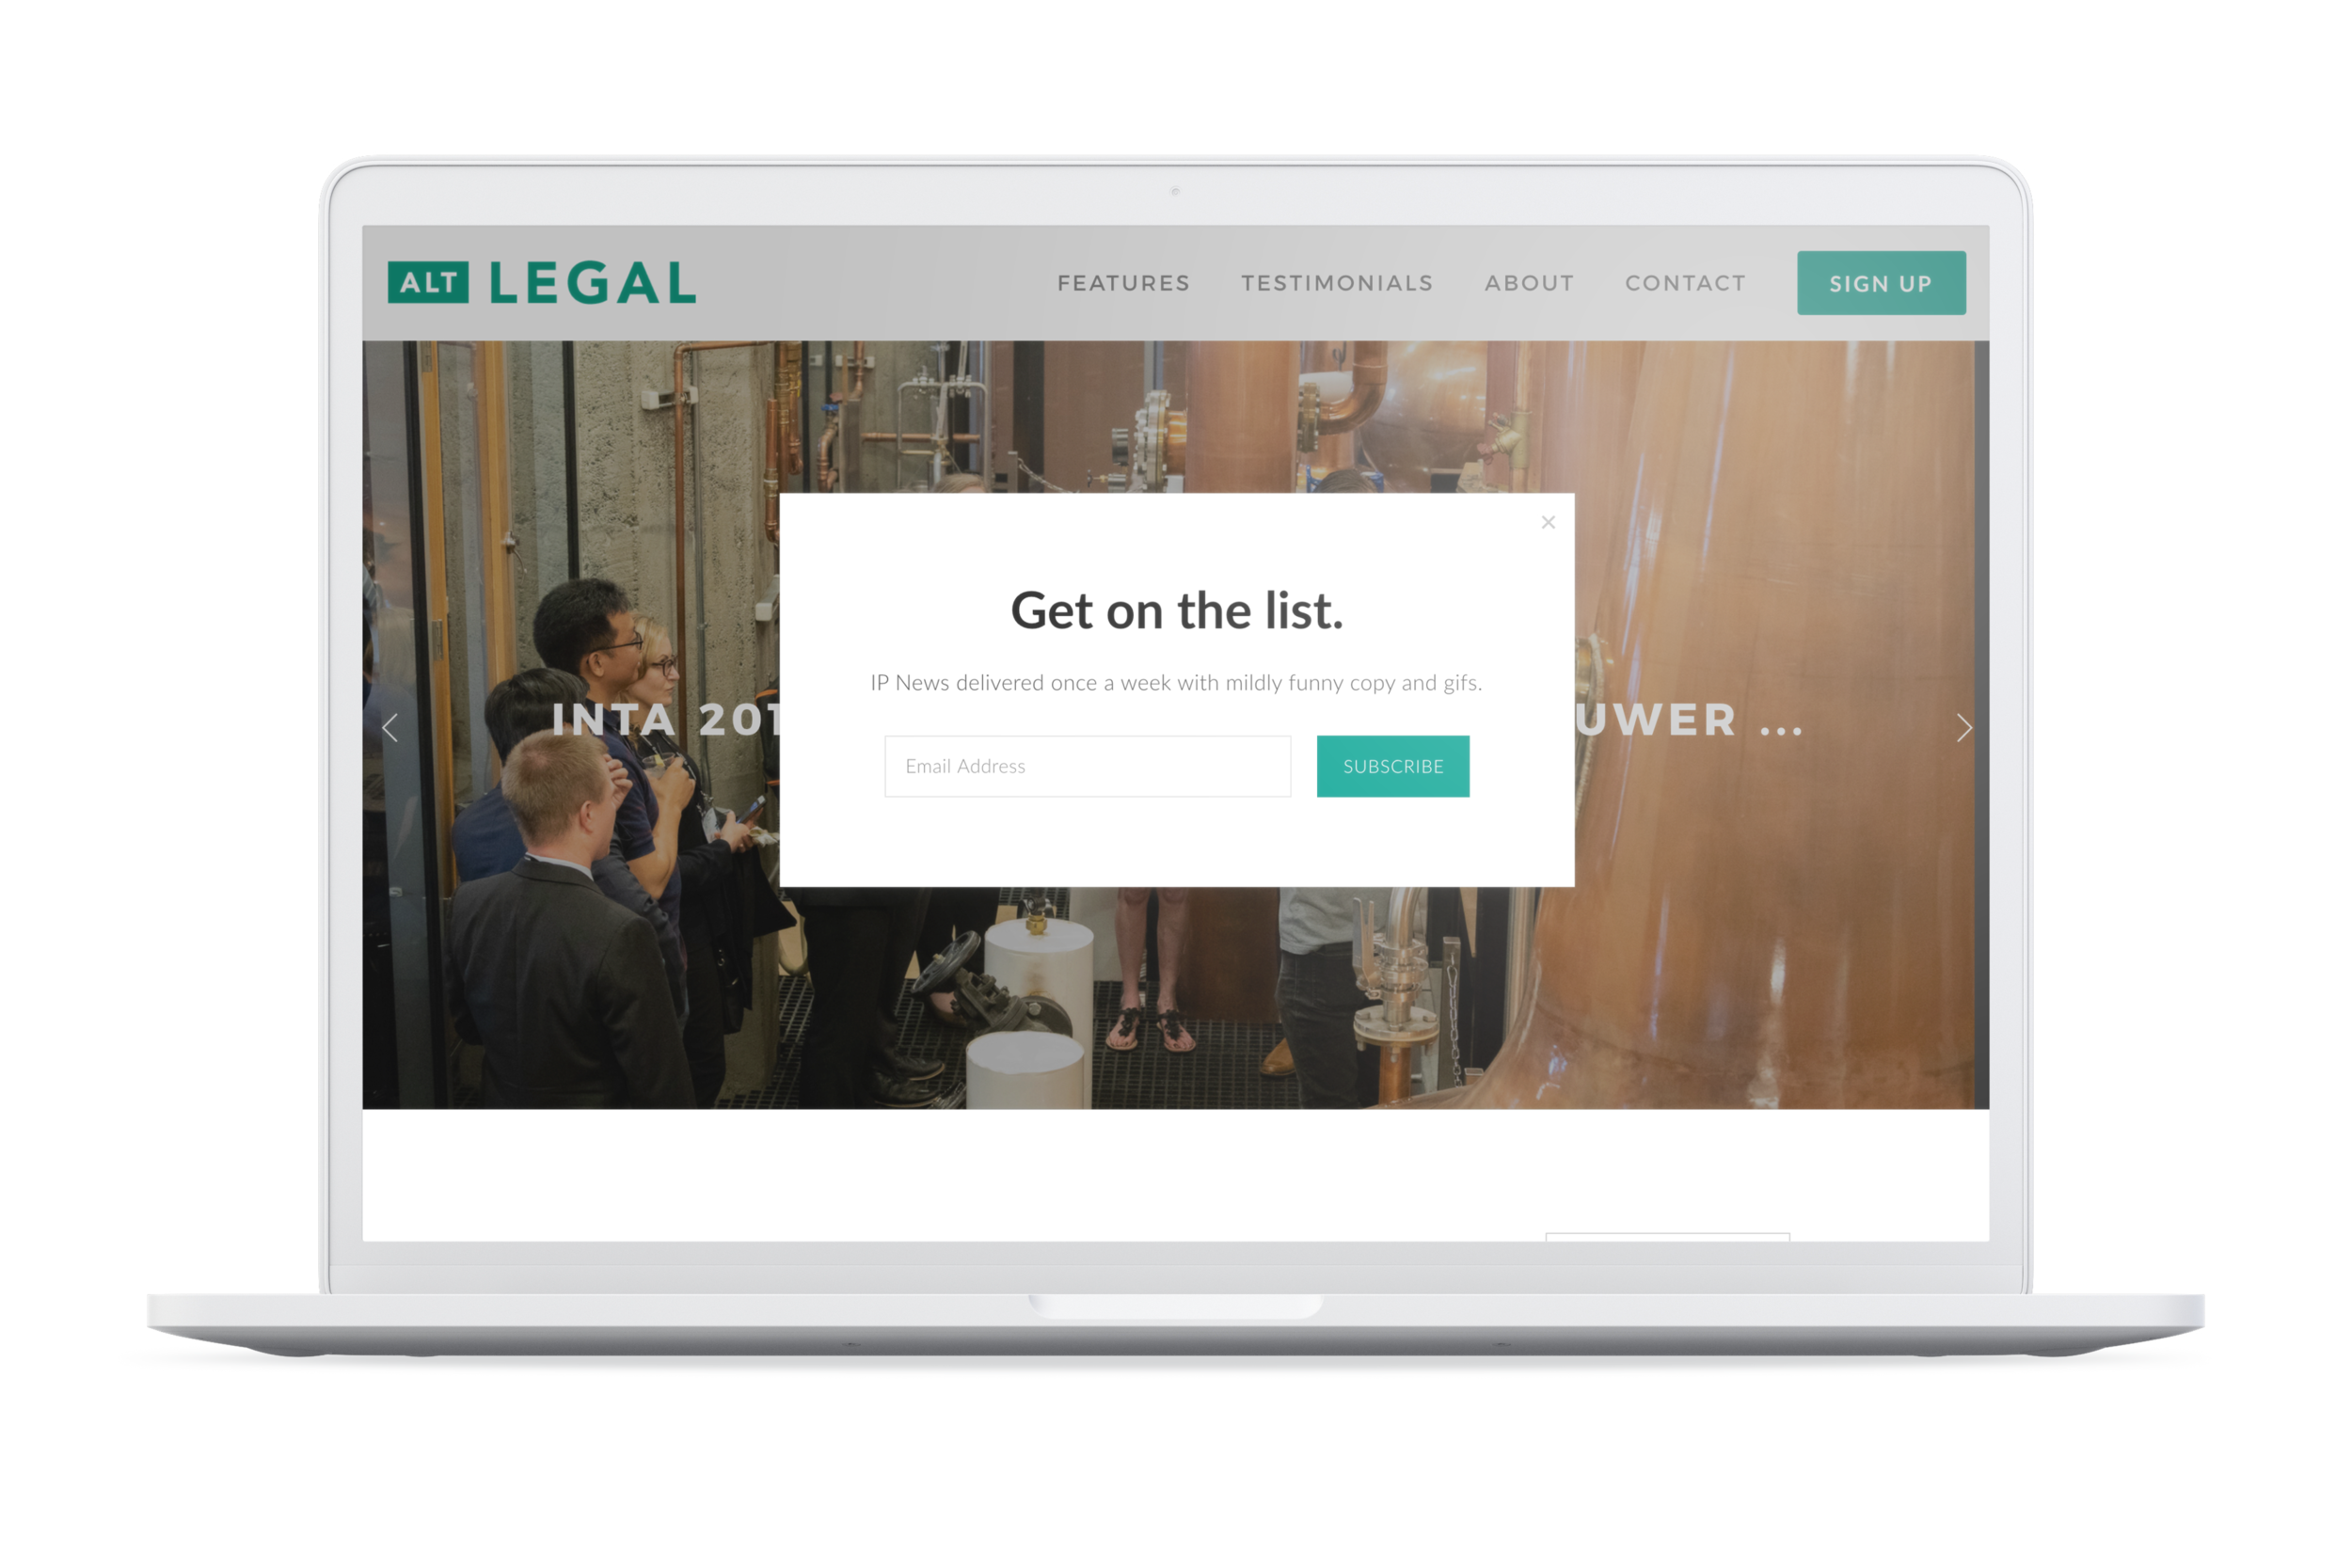 Alt Legal: analytics & design driven marketing